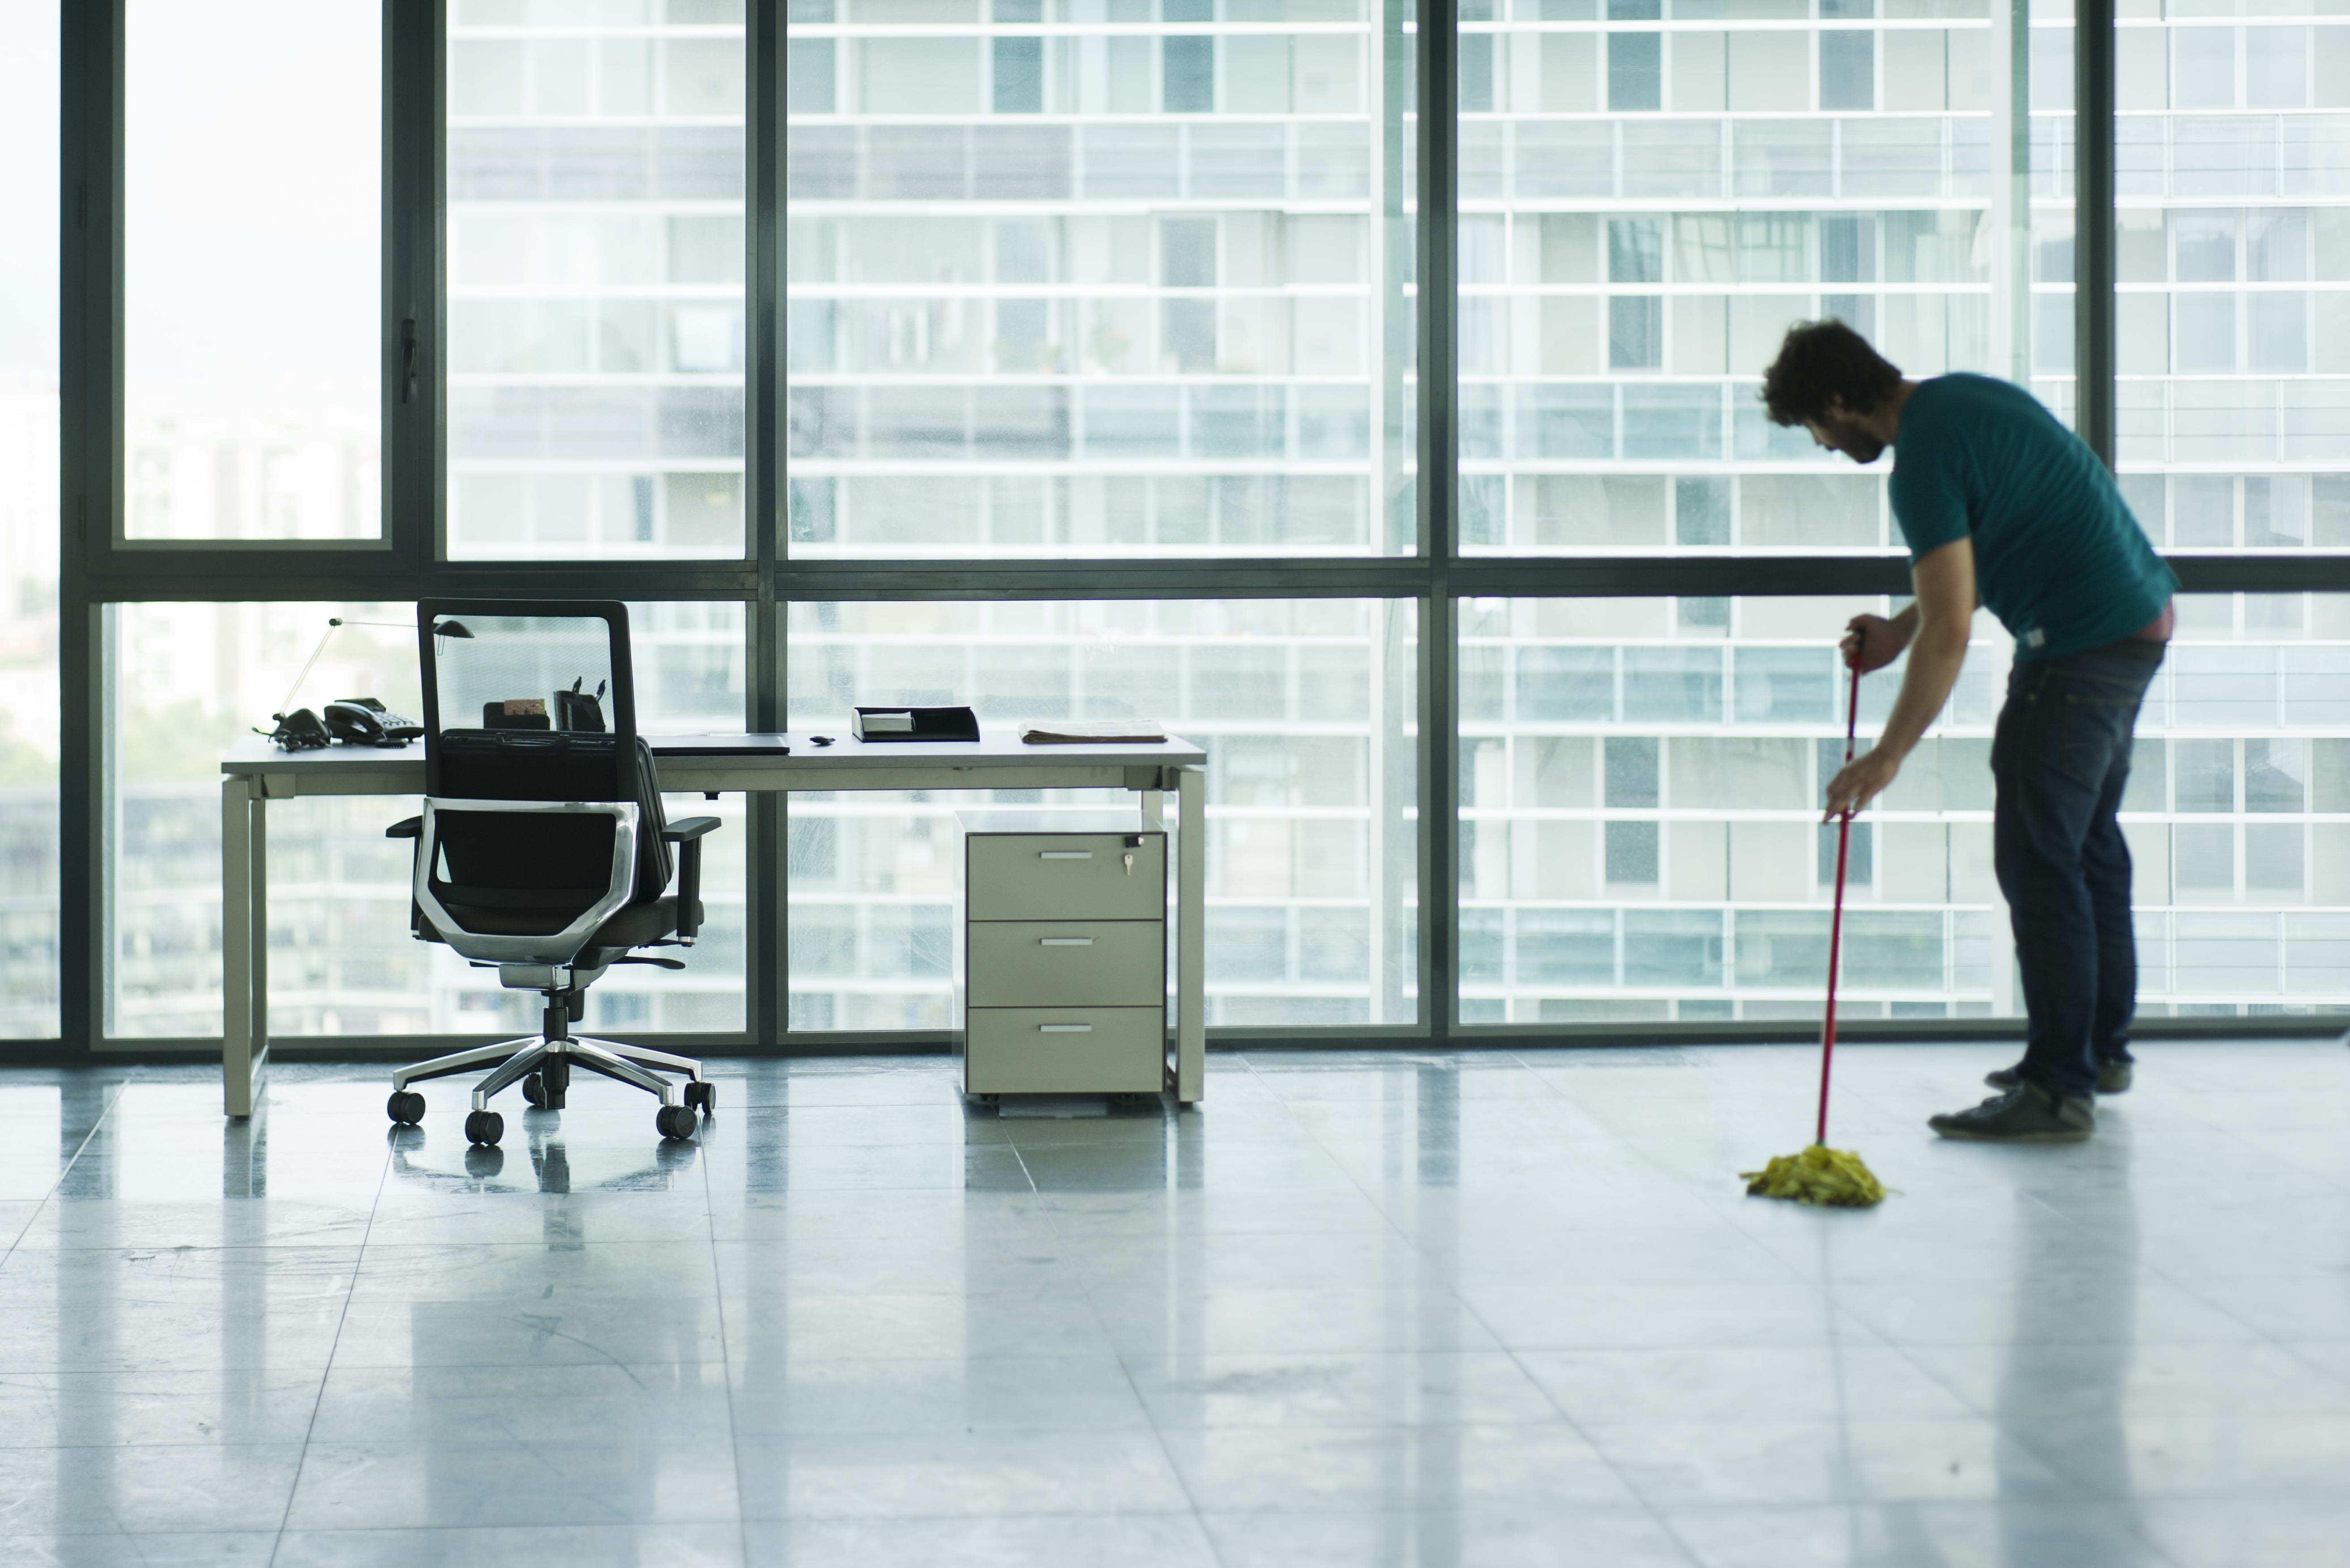 A lone man mopping an office floor.